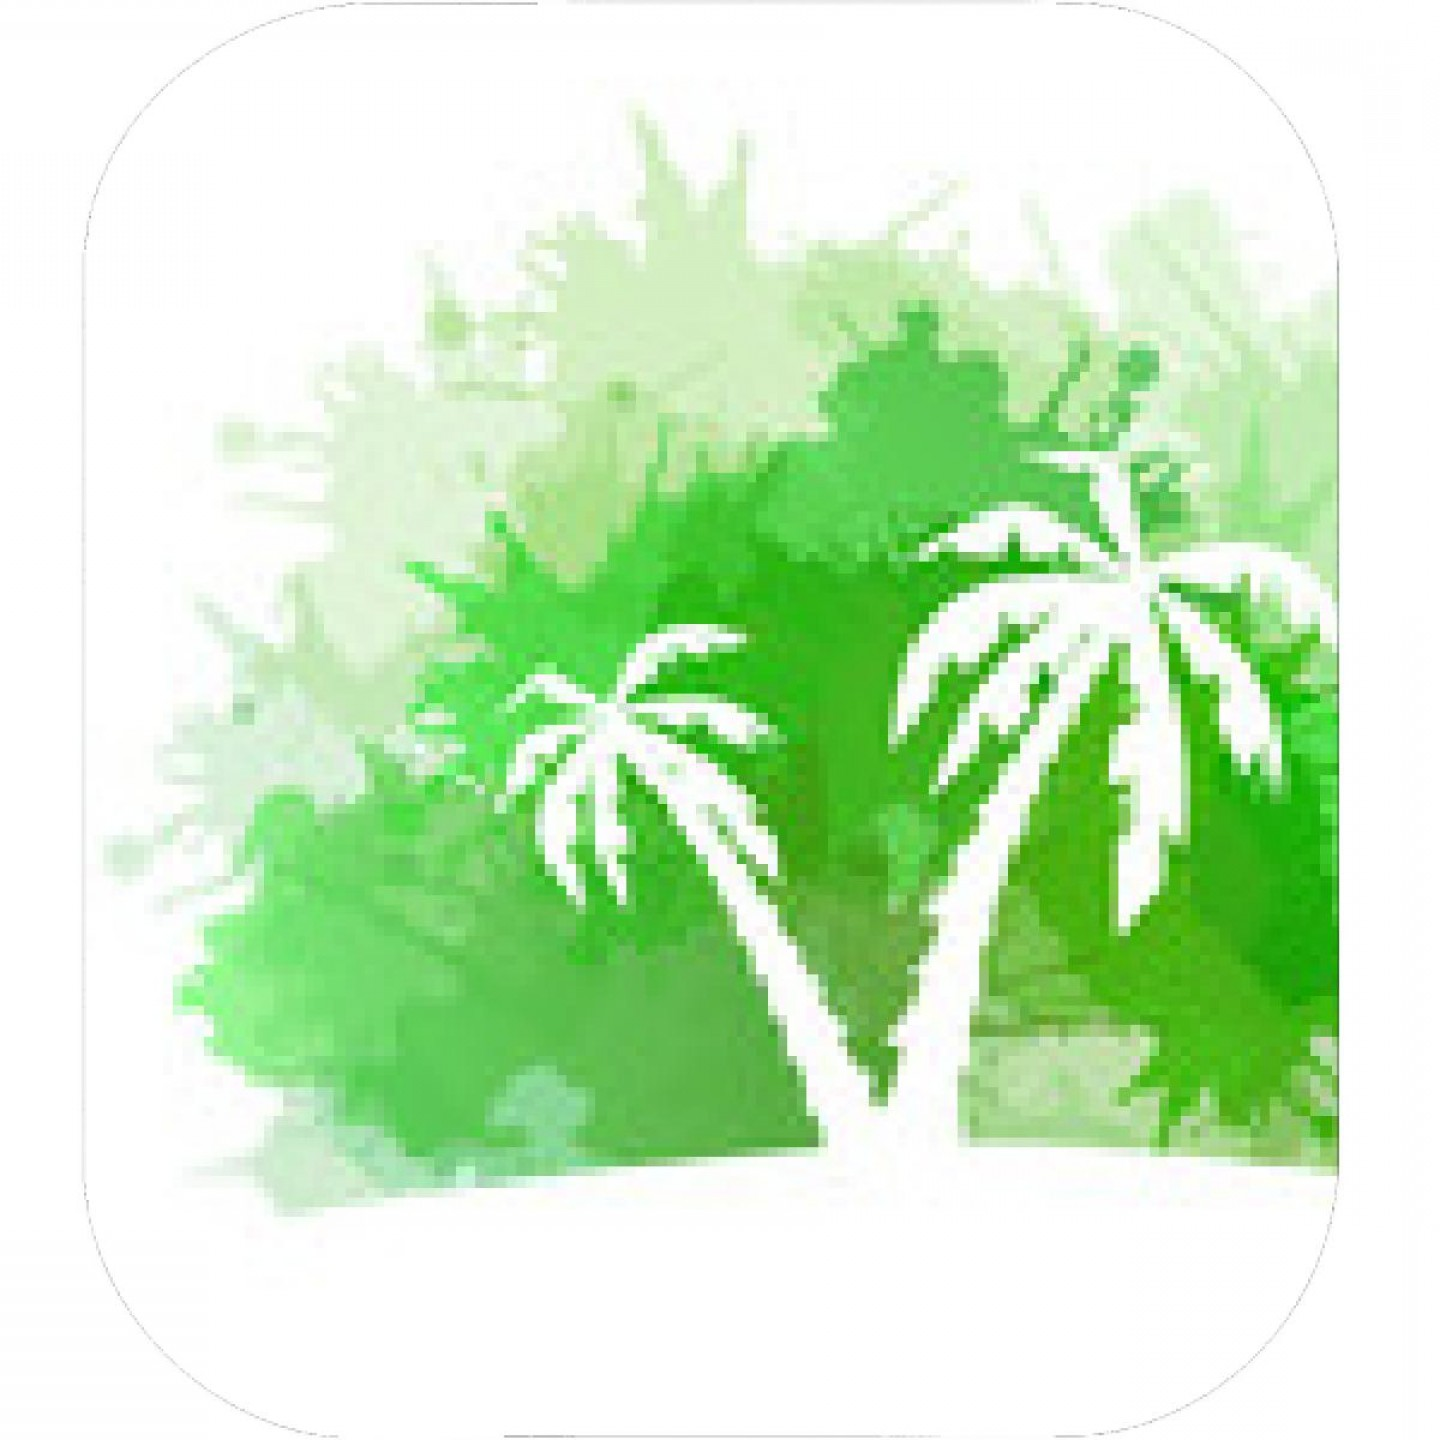 Watercolor Palm Tree Vector: Summer Banner With Watercolor Splashes And Palm Trees Vector Element For Your Design